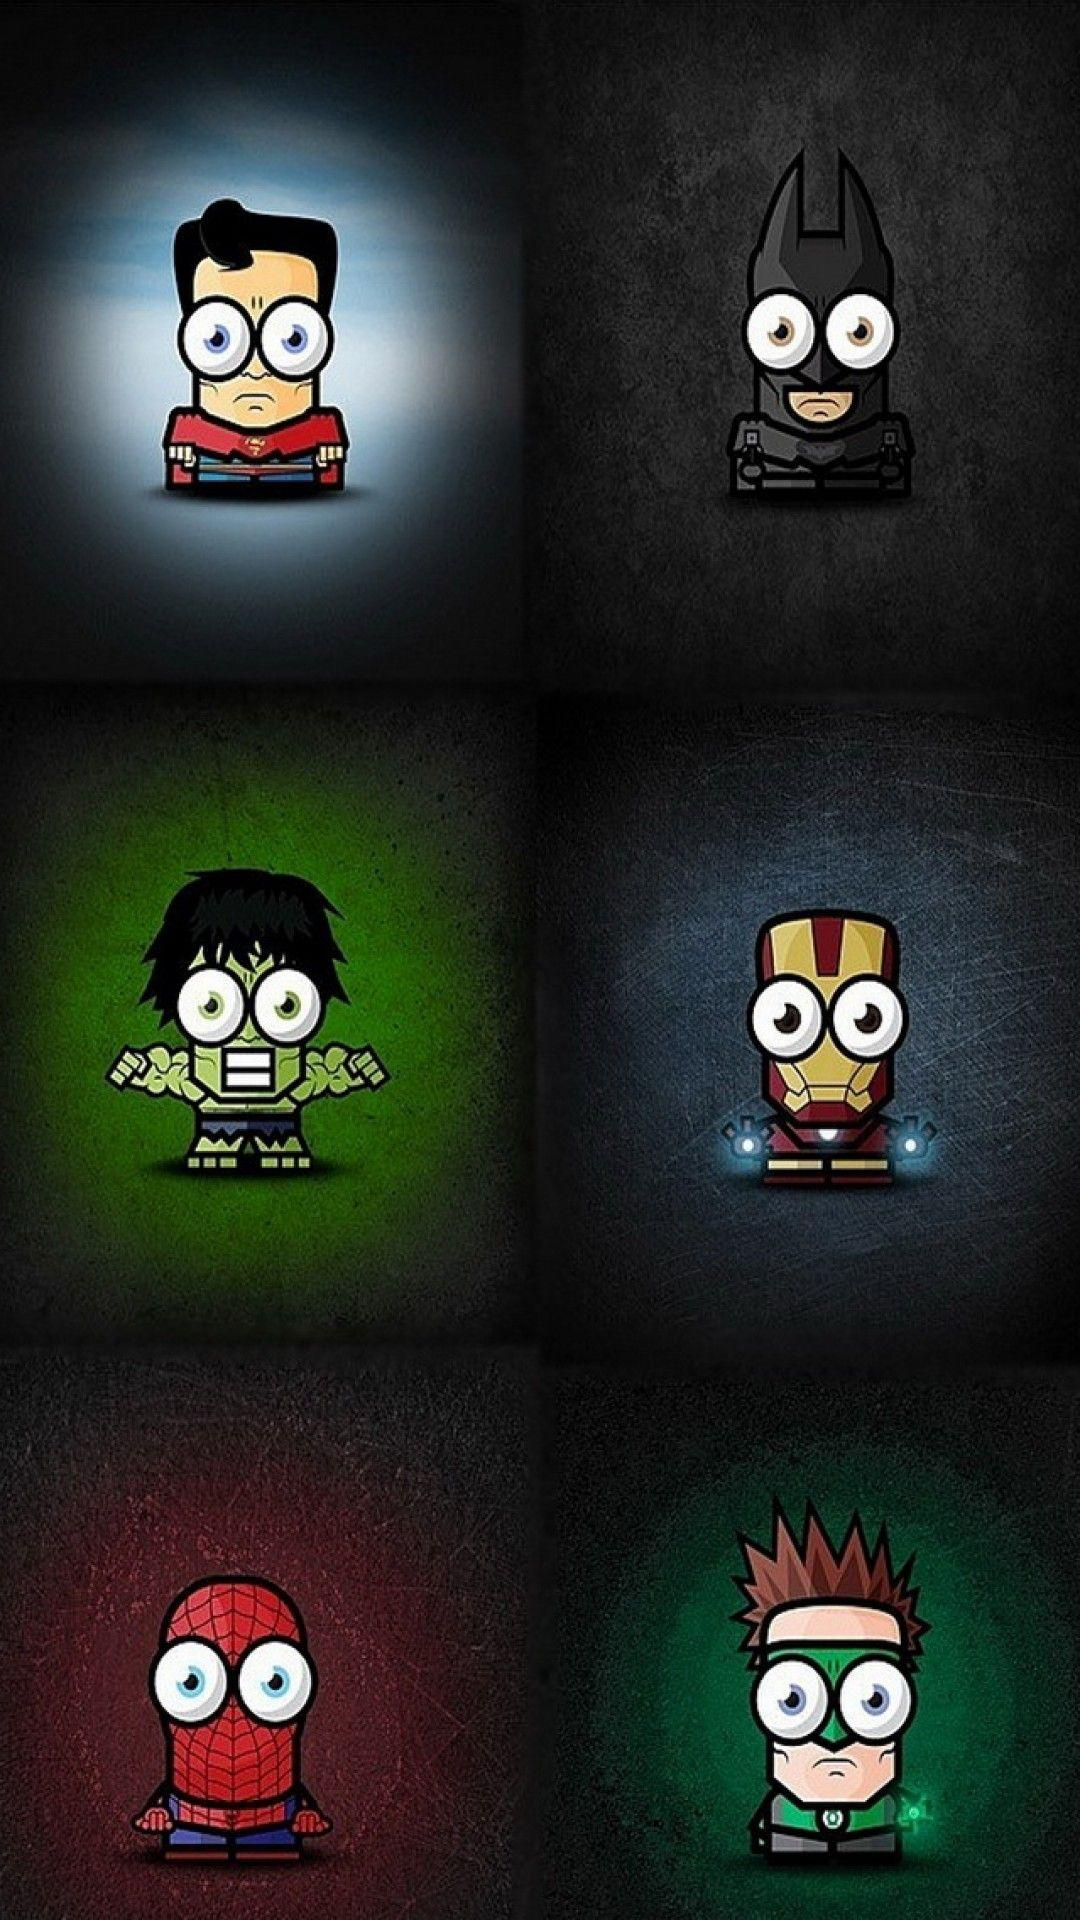 Unduh 6600 Koleksi Wallpaper Iphone Kartun Keren HD Gratid